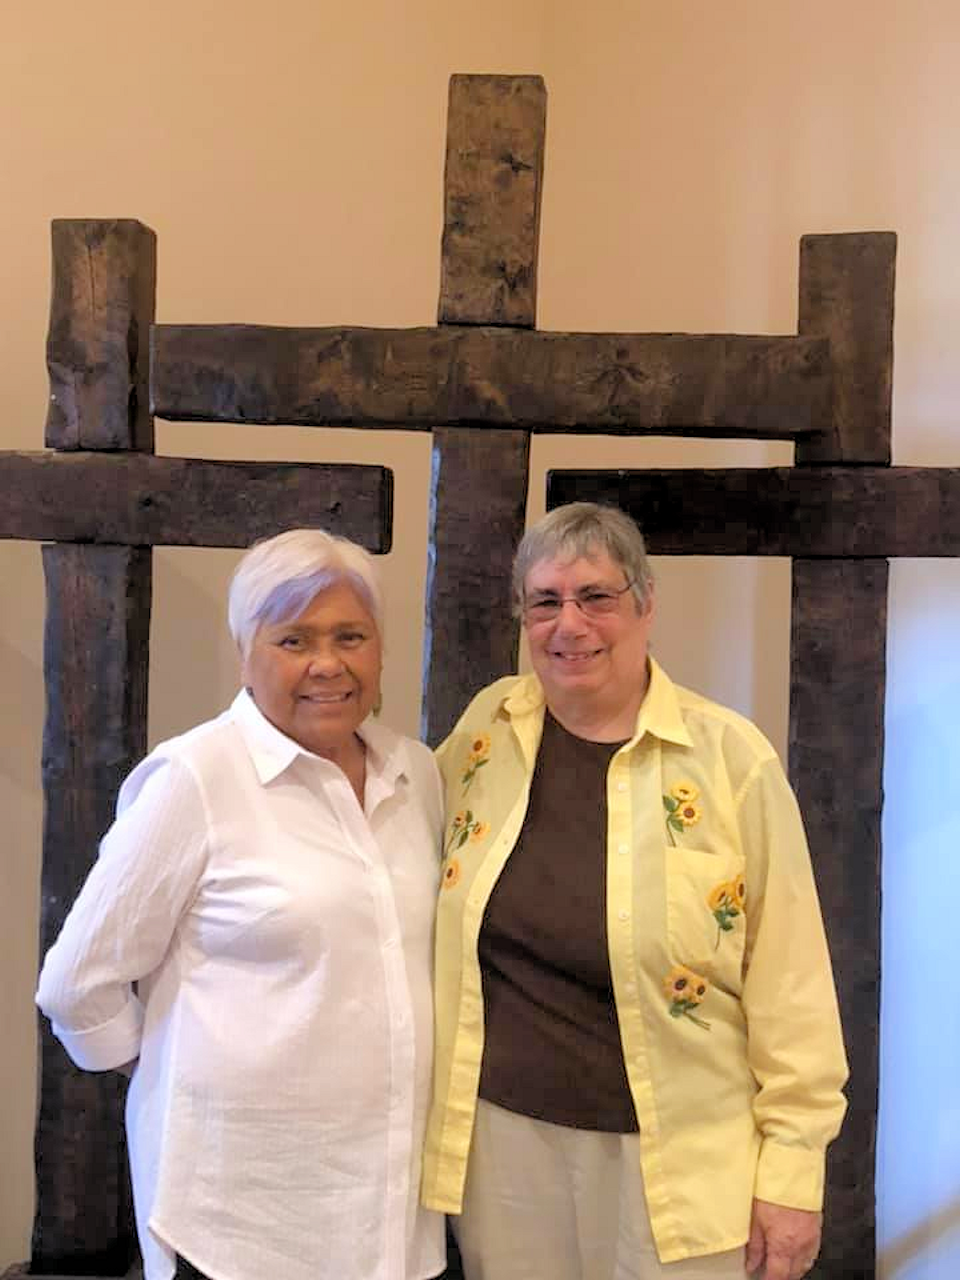 Two new rural chaplains